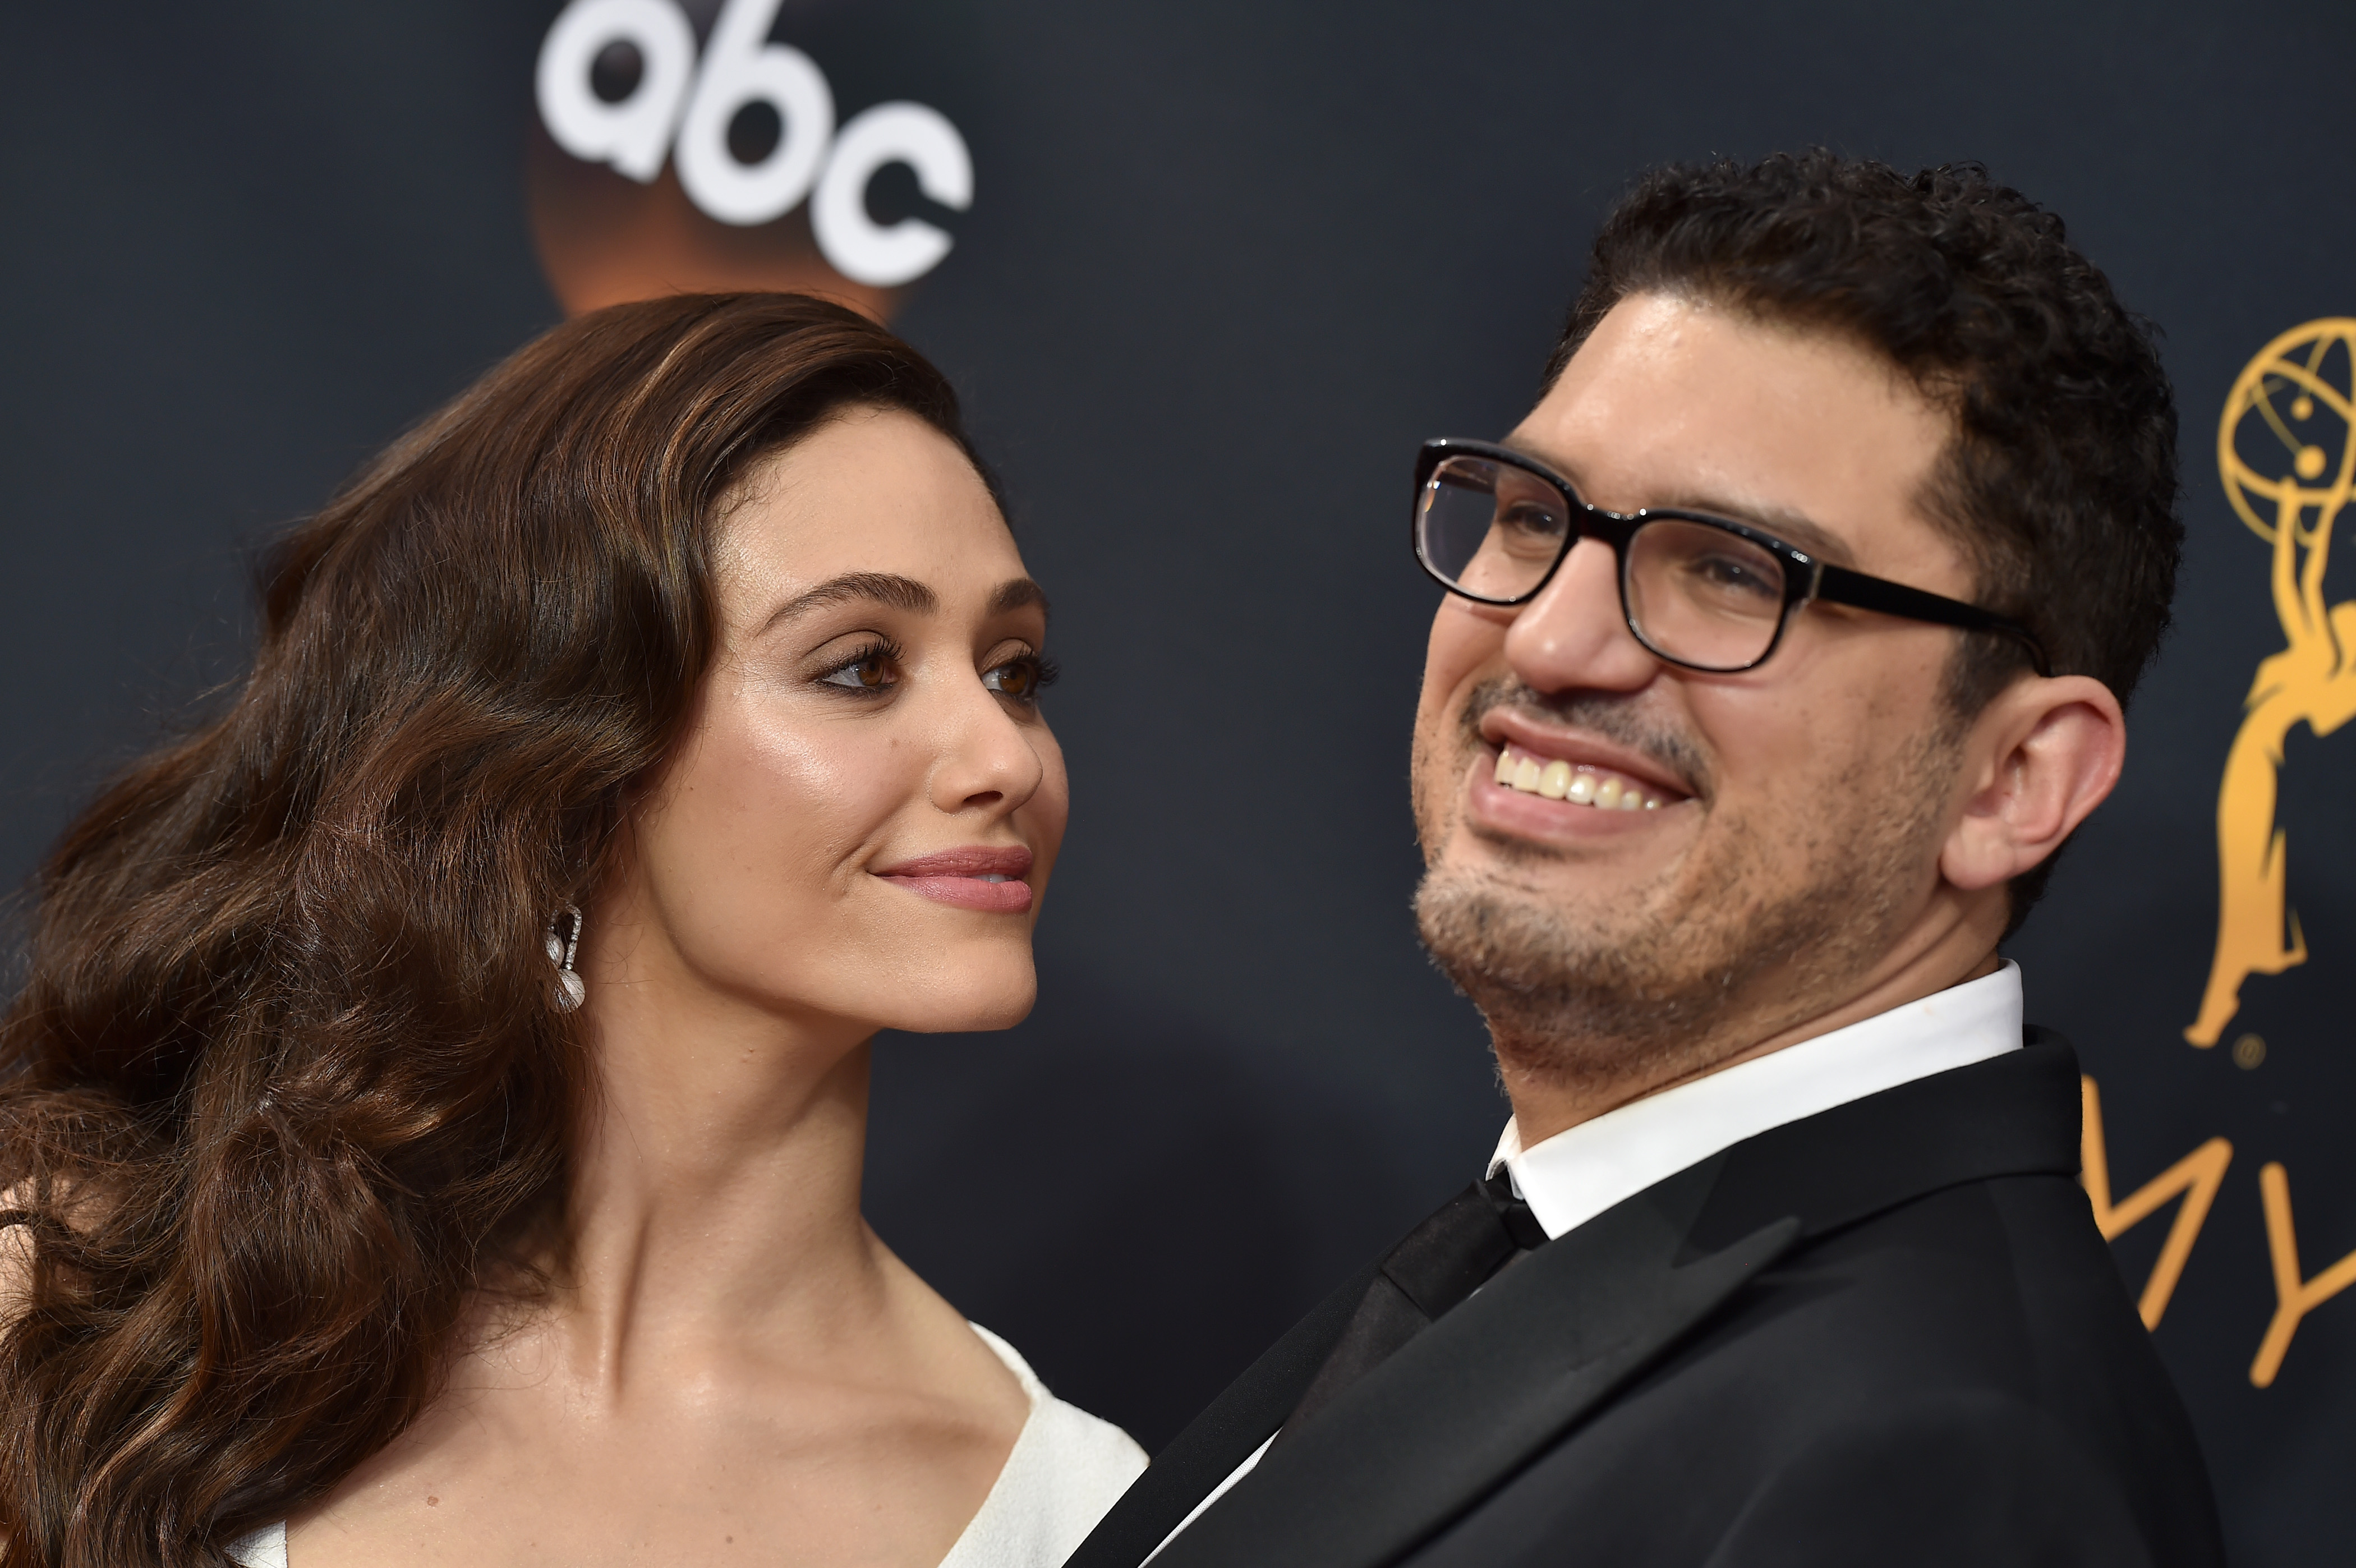 Actress Emmy Rossum (L) and writer/producer Sam Esmail arrive at the 68th Annual Primetime Emmy Awards at Microsoft Theater on September 18, 2016 in Los Angeles, California.